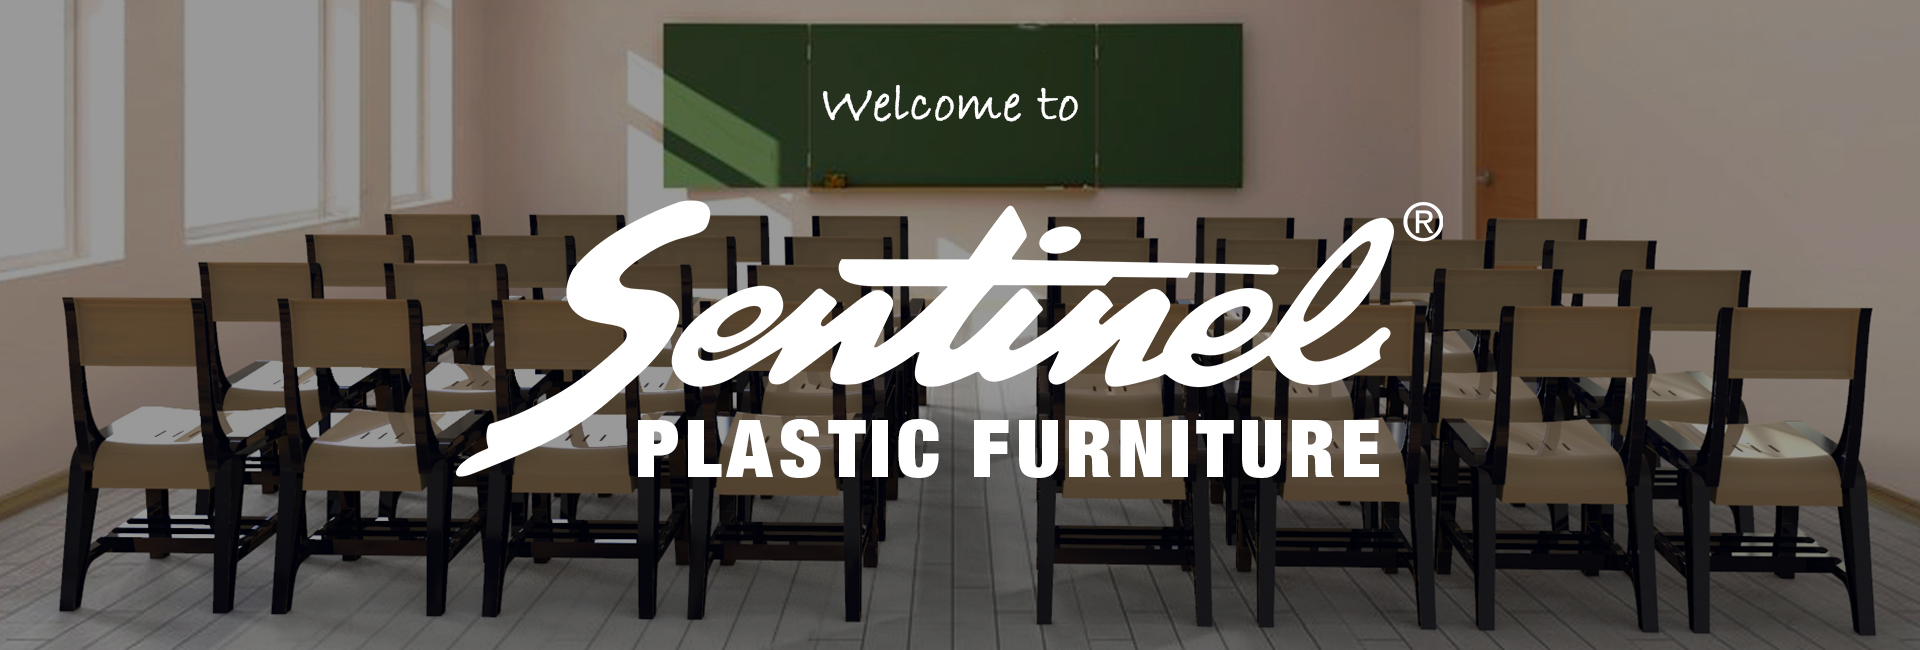 welcome-sentinel-plastic-manufacturing-corporation-cover